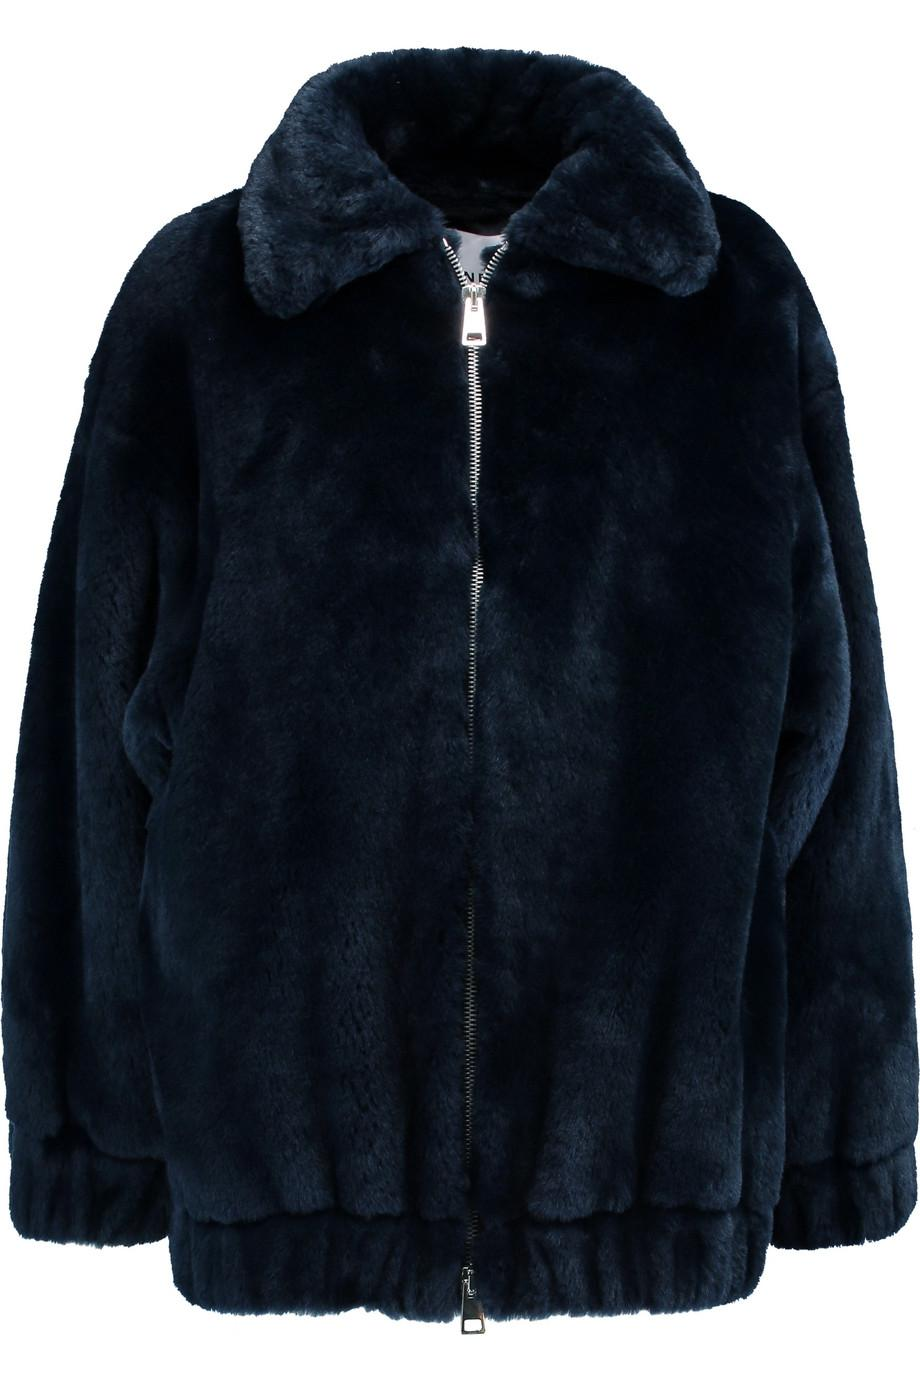 Ainea Woman Oversized Faux Fur Coat Midnight Blue